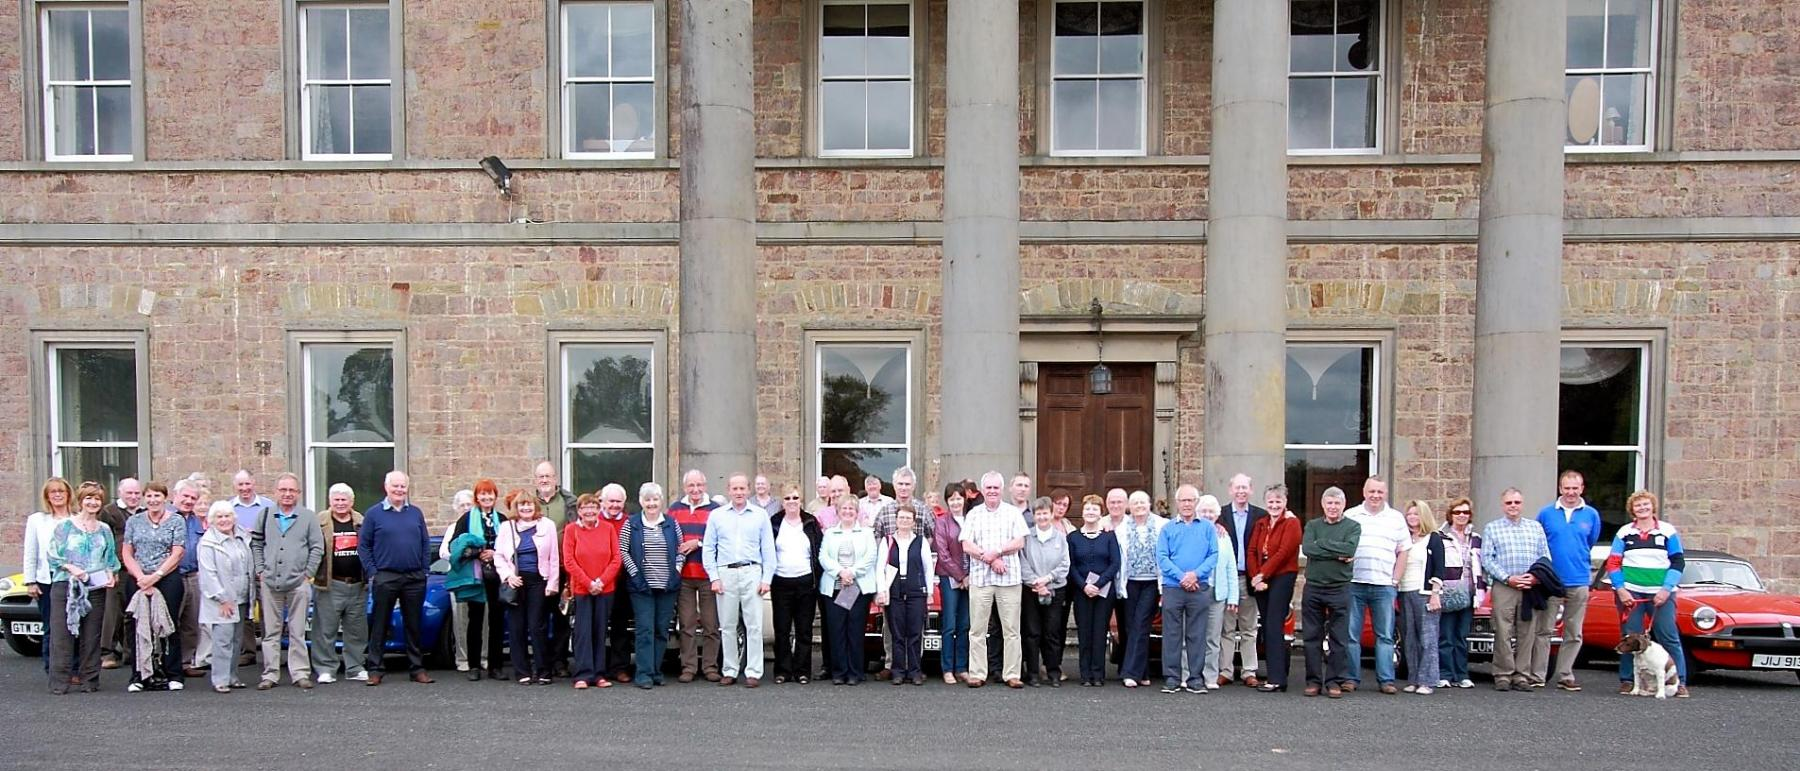 Members-at-Colebrooke-house-during-the-Omagh-Run-pf-5